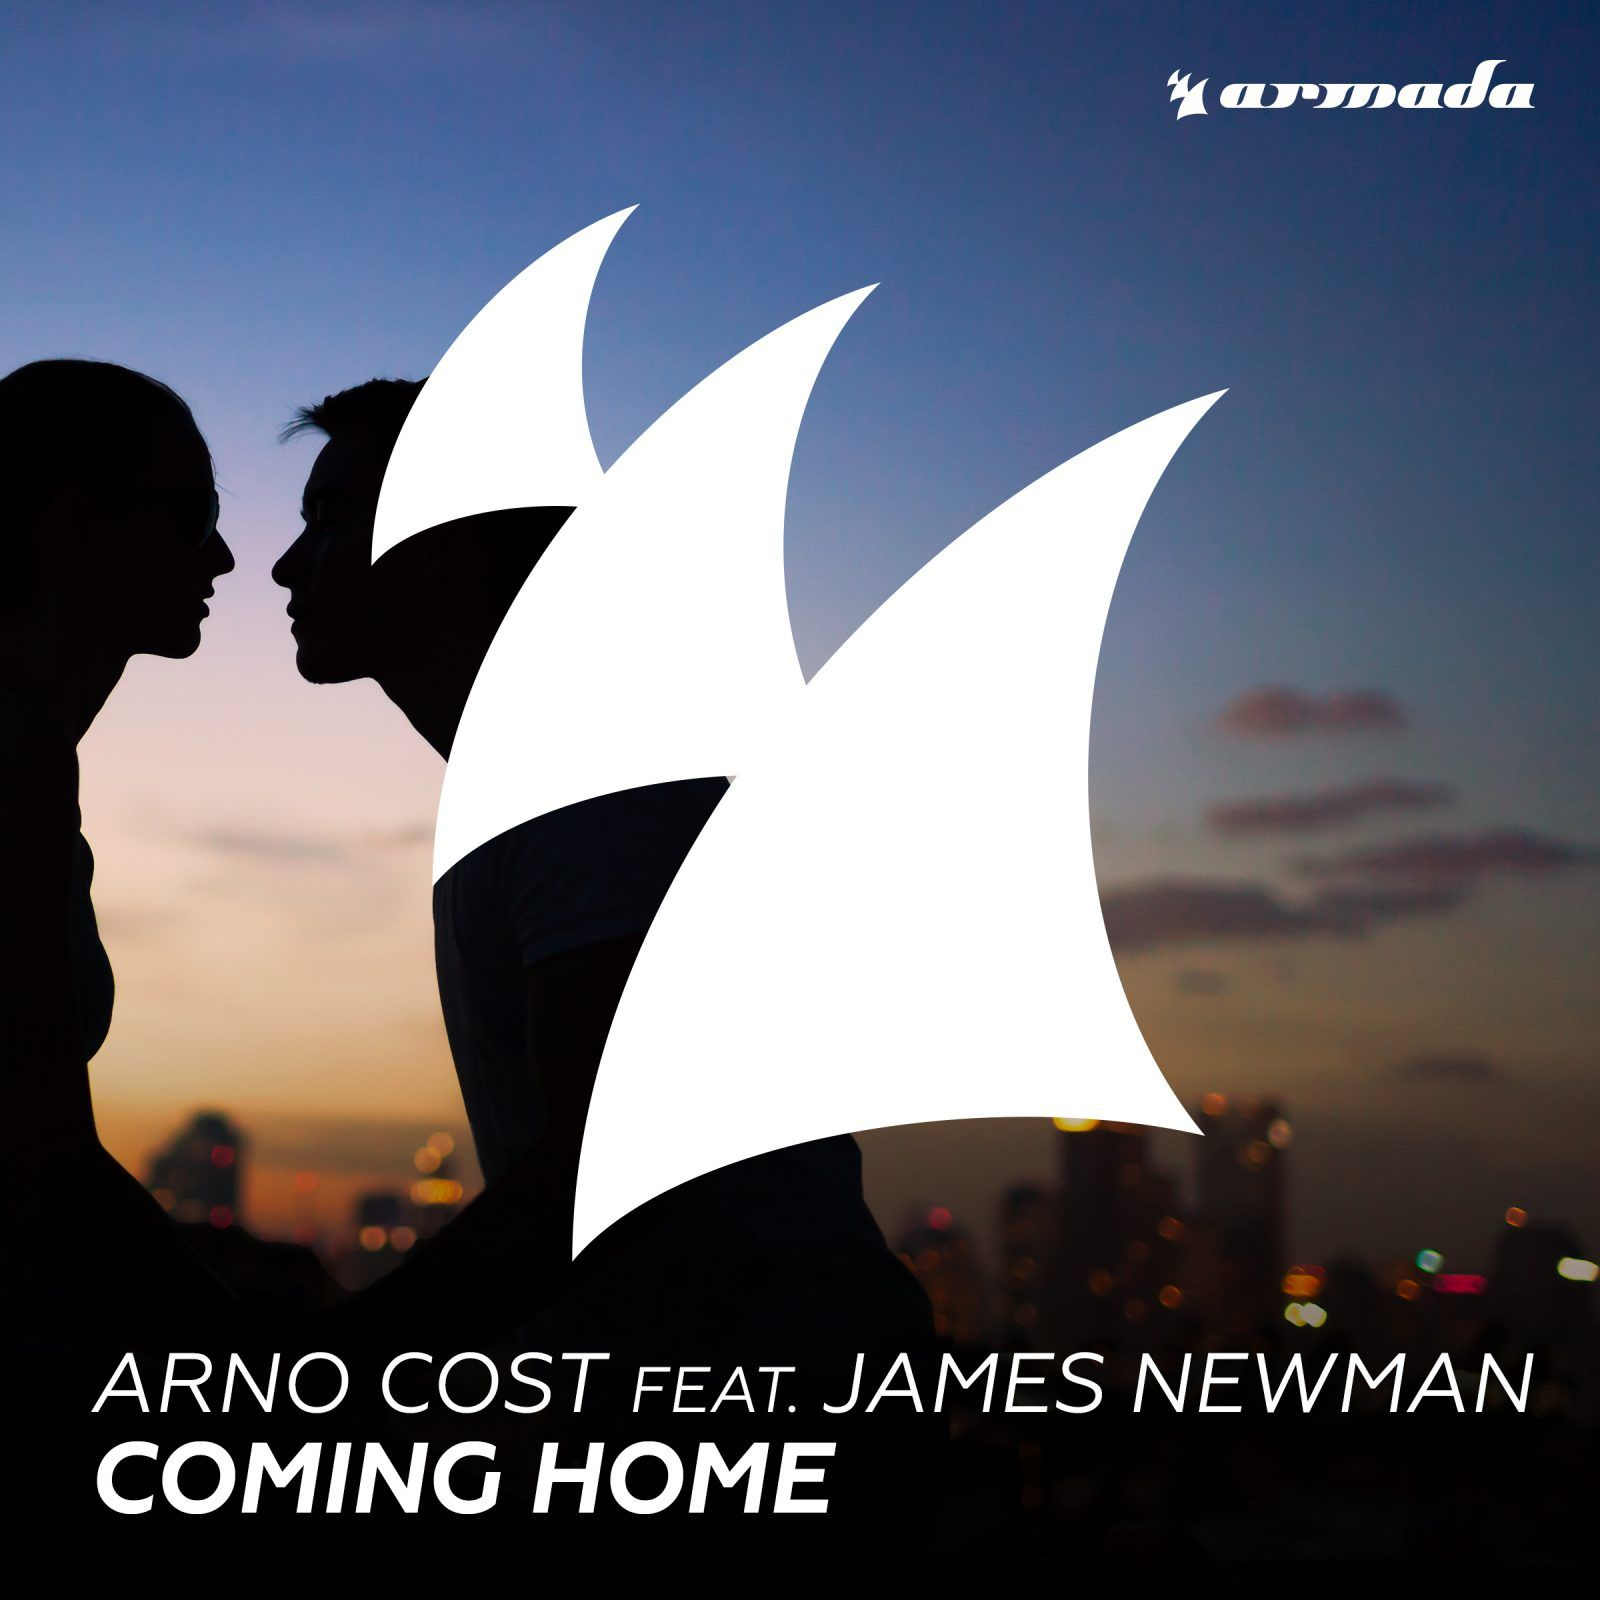 armas1082-arno-cost-feat.james-newman-coming-home-final1.jpg